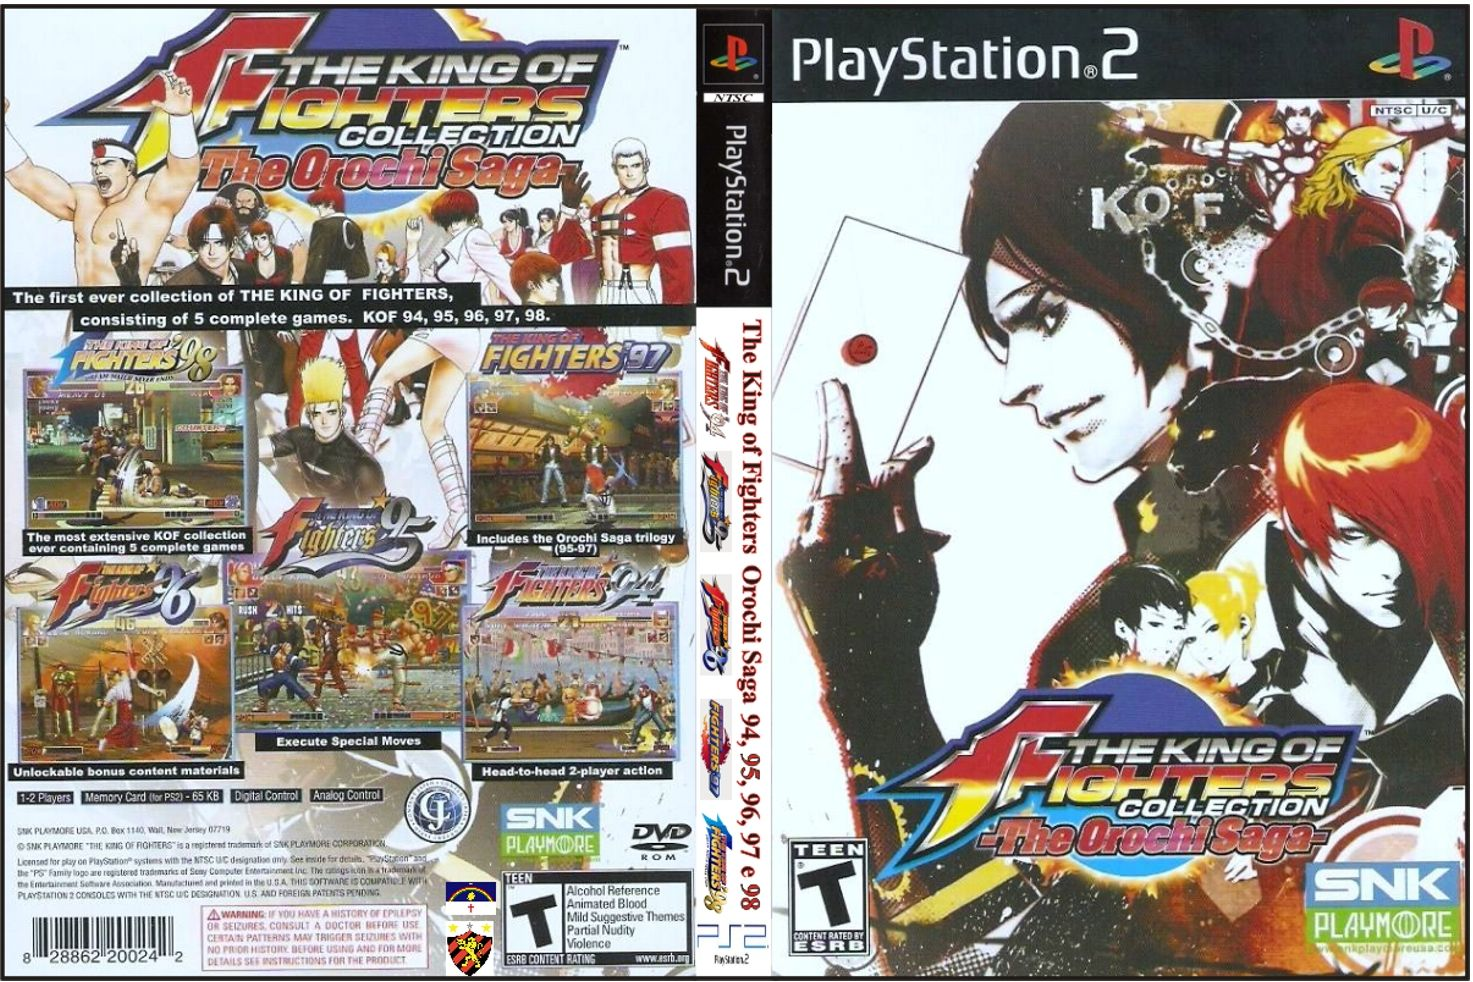 Jogo The King of Fighters Collection The Orochi Saga PS2 DVD Capa